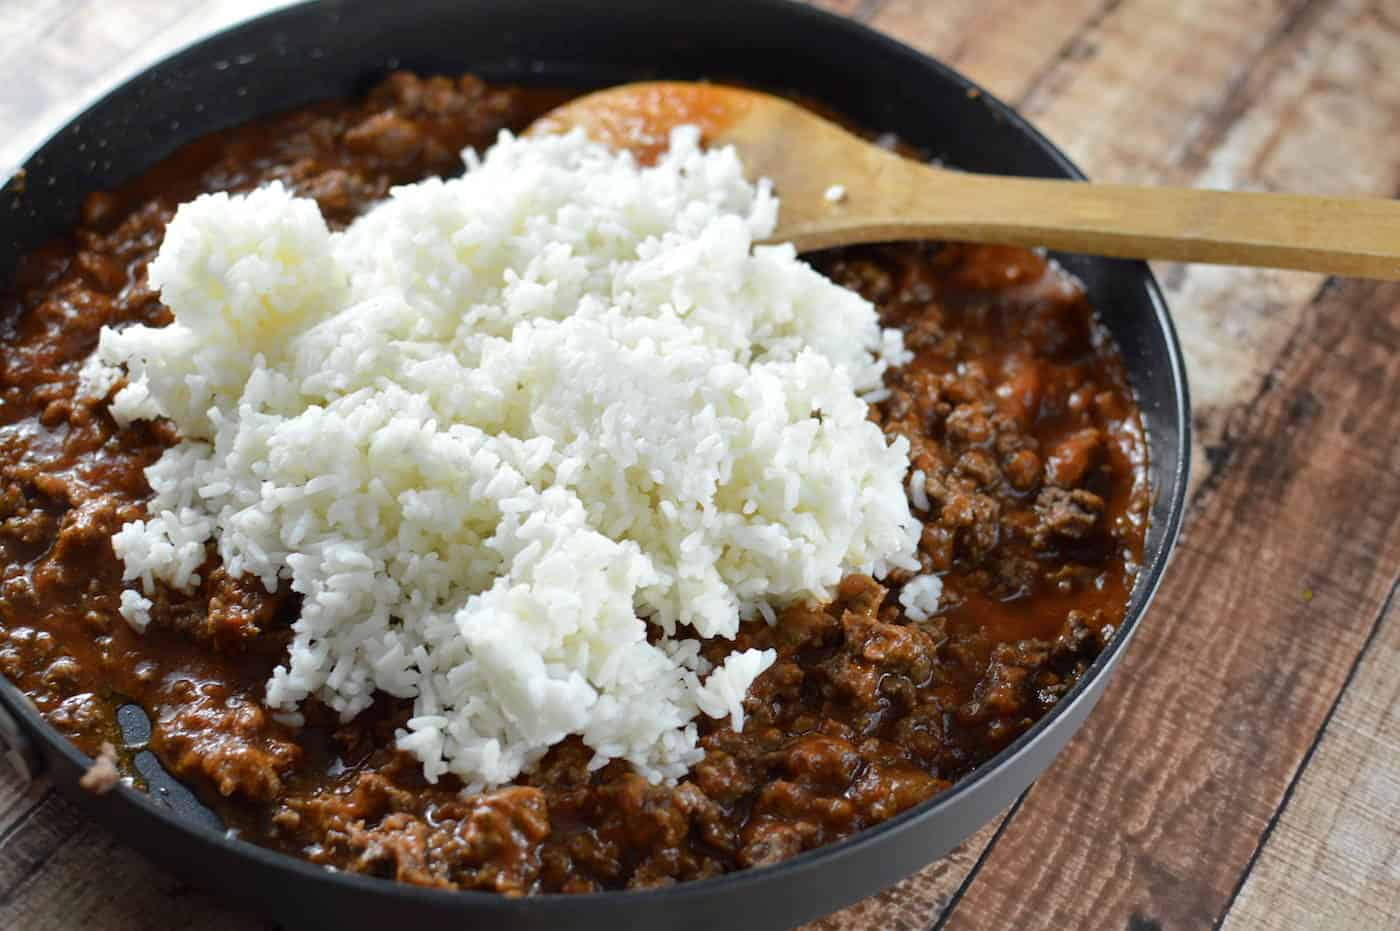 Adding rice to a pan of ground beef